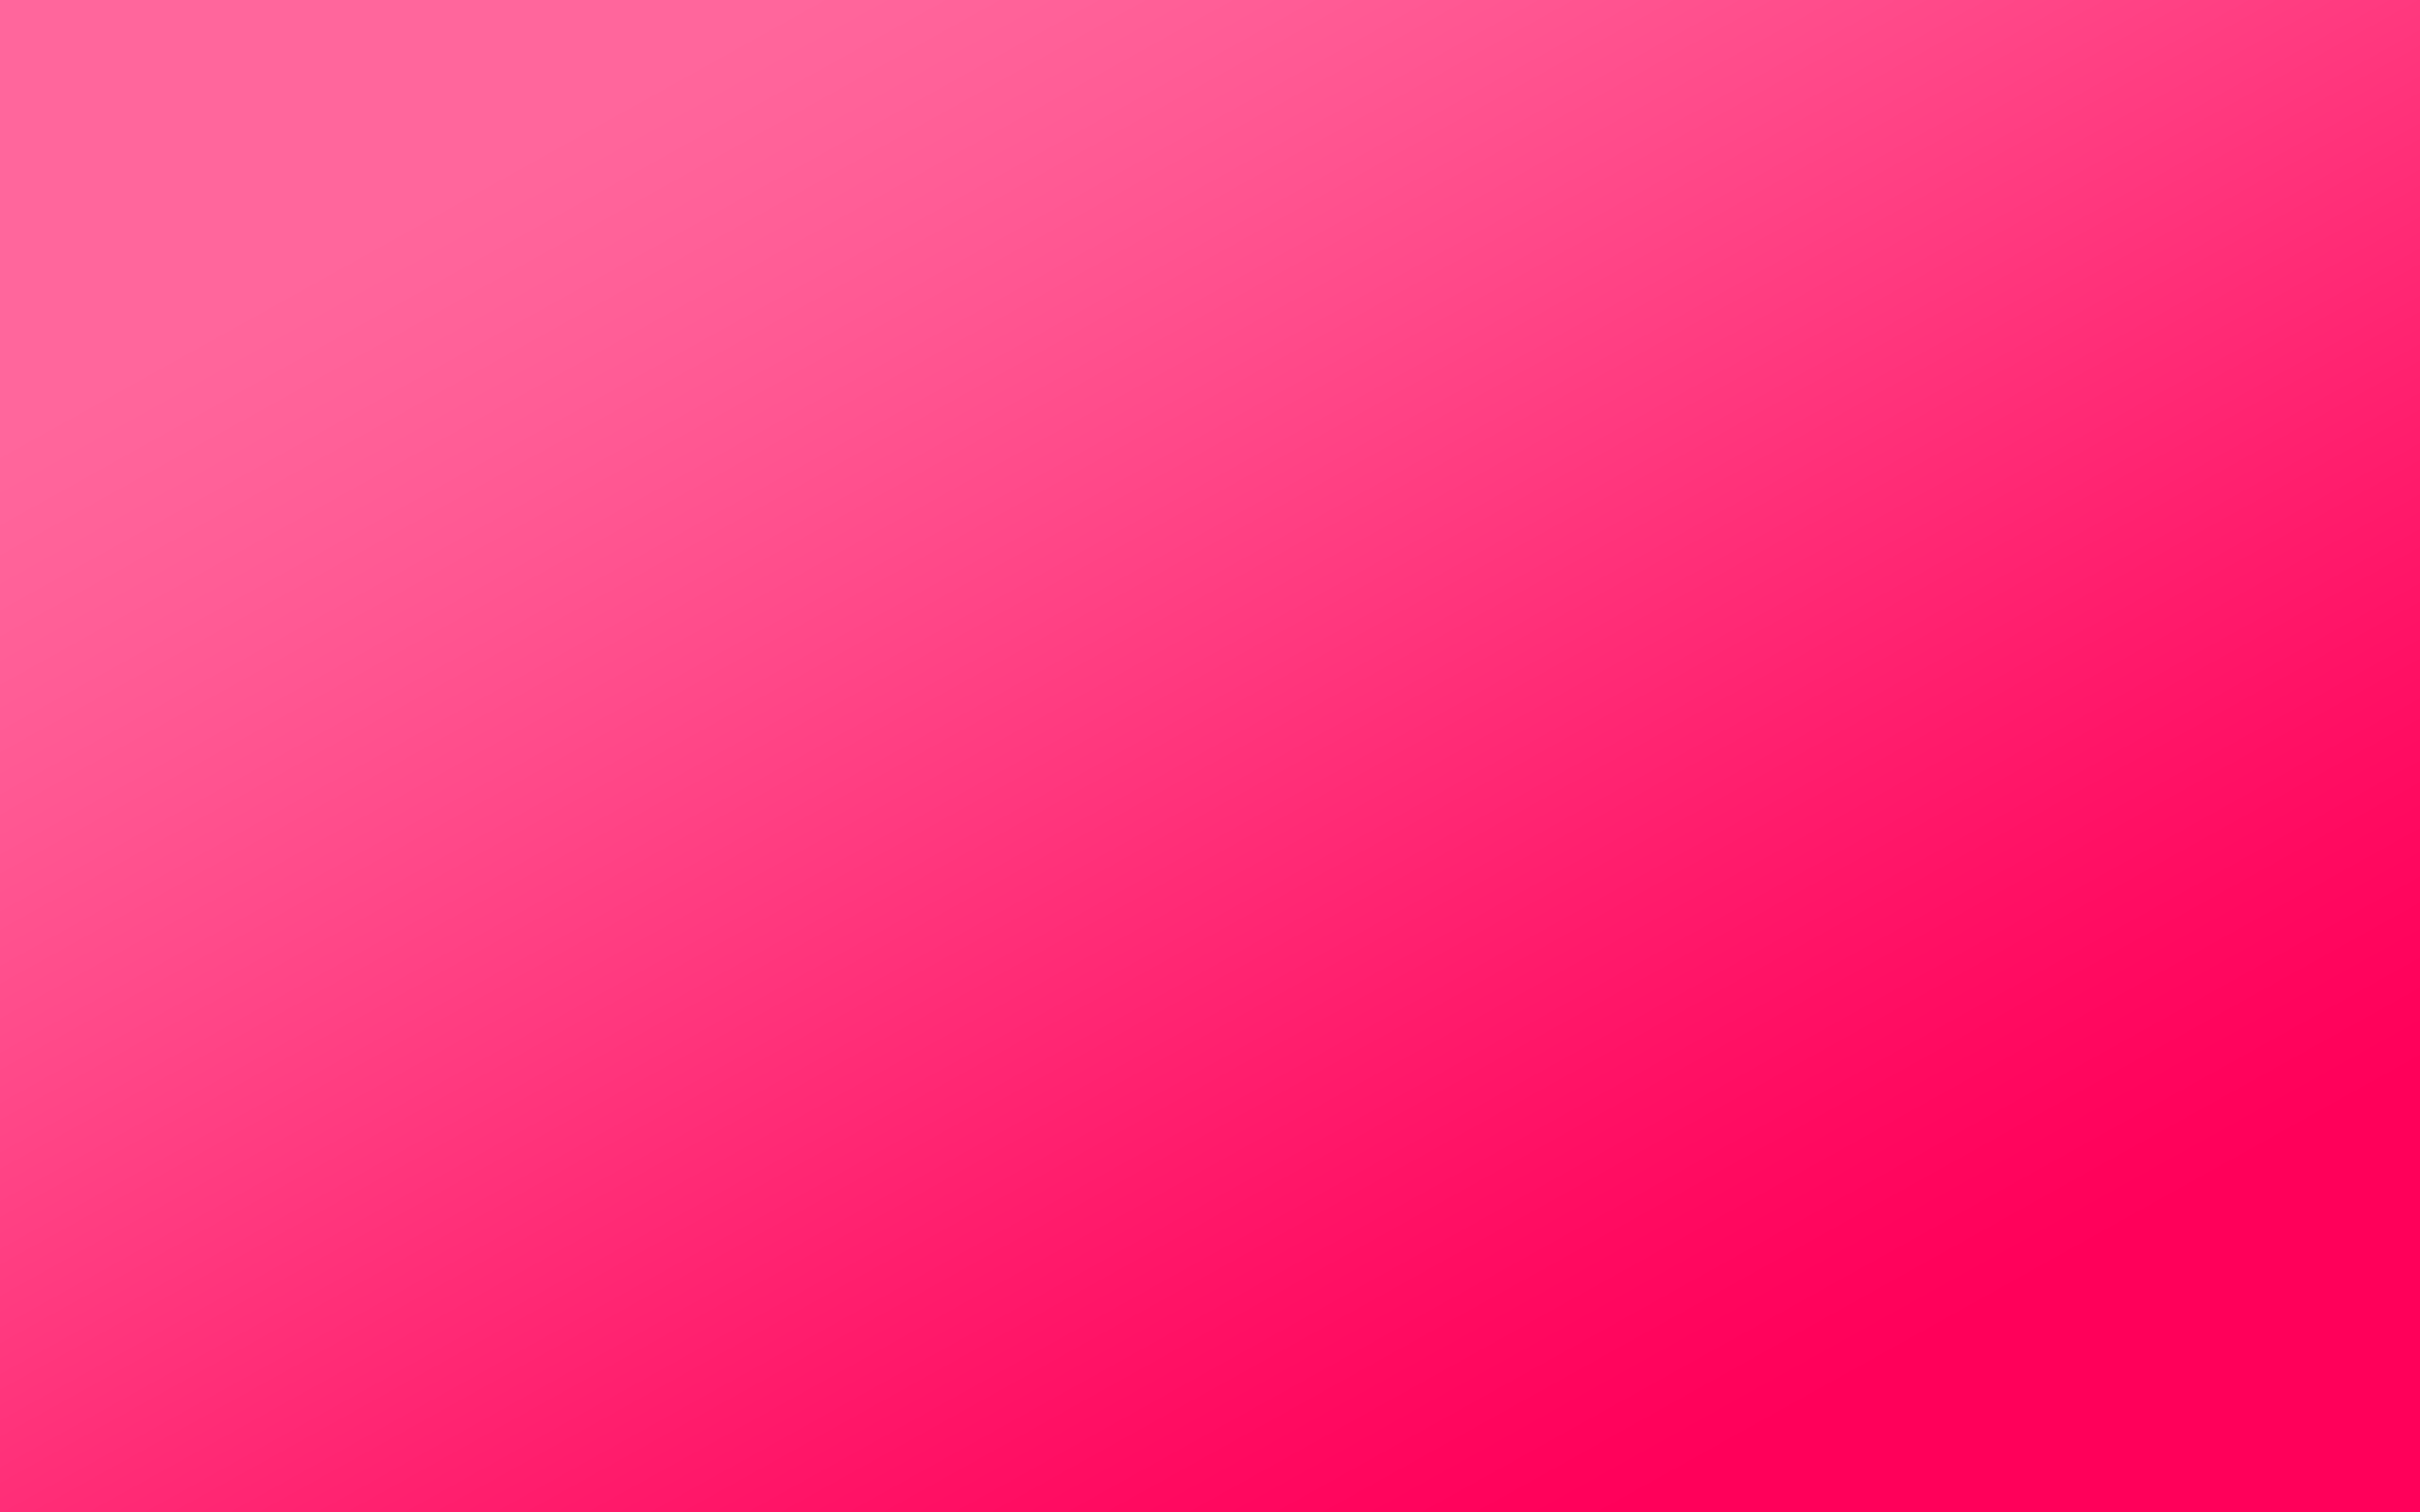 Pink Wallpapers   Full HD wallpaper search 2560x1600